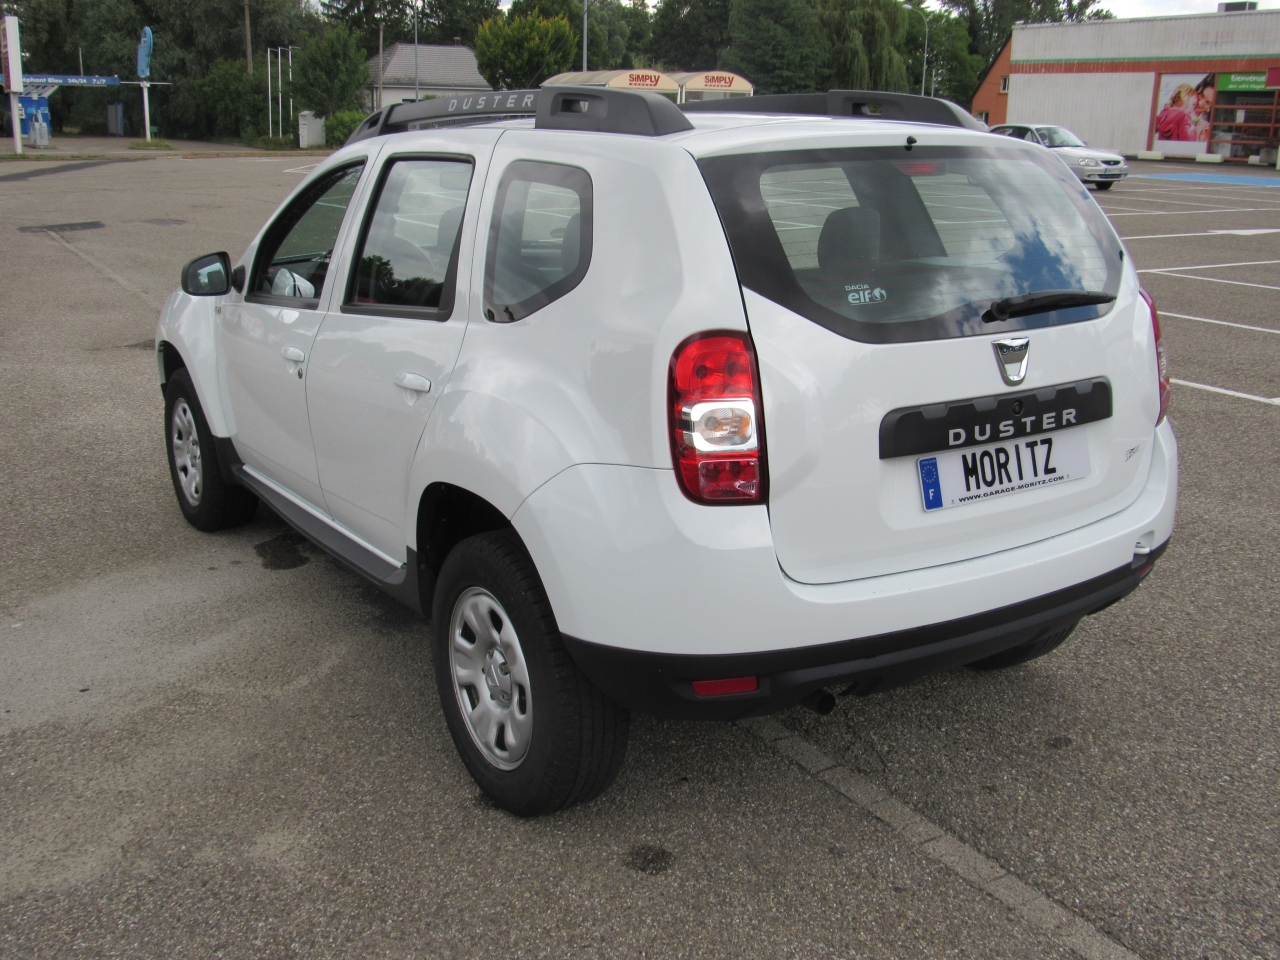 duster dacia occasion dacia duster 1 5 dci110 prestige 4x4 occasion mont limar drome ard che. Black Bedroom Furniture Sets. Home Design Ideas